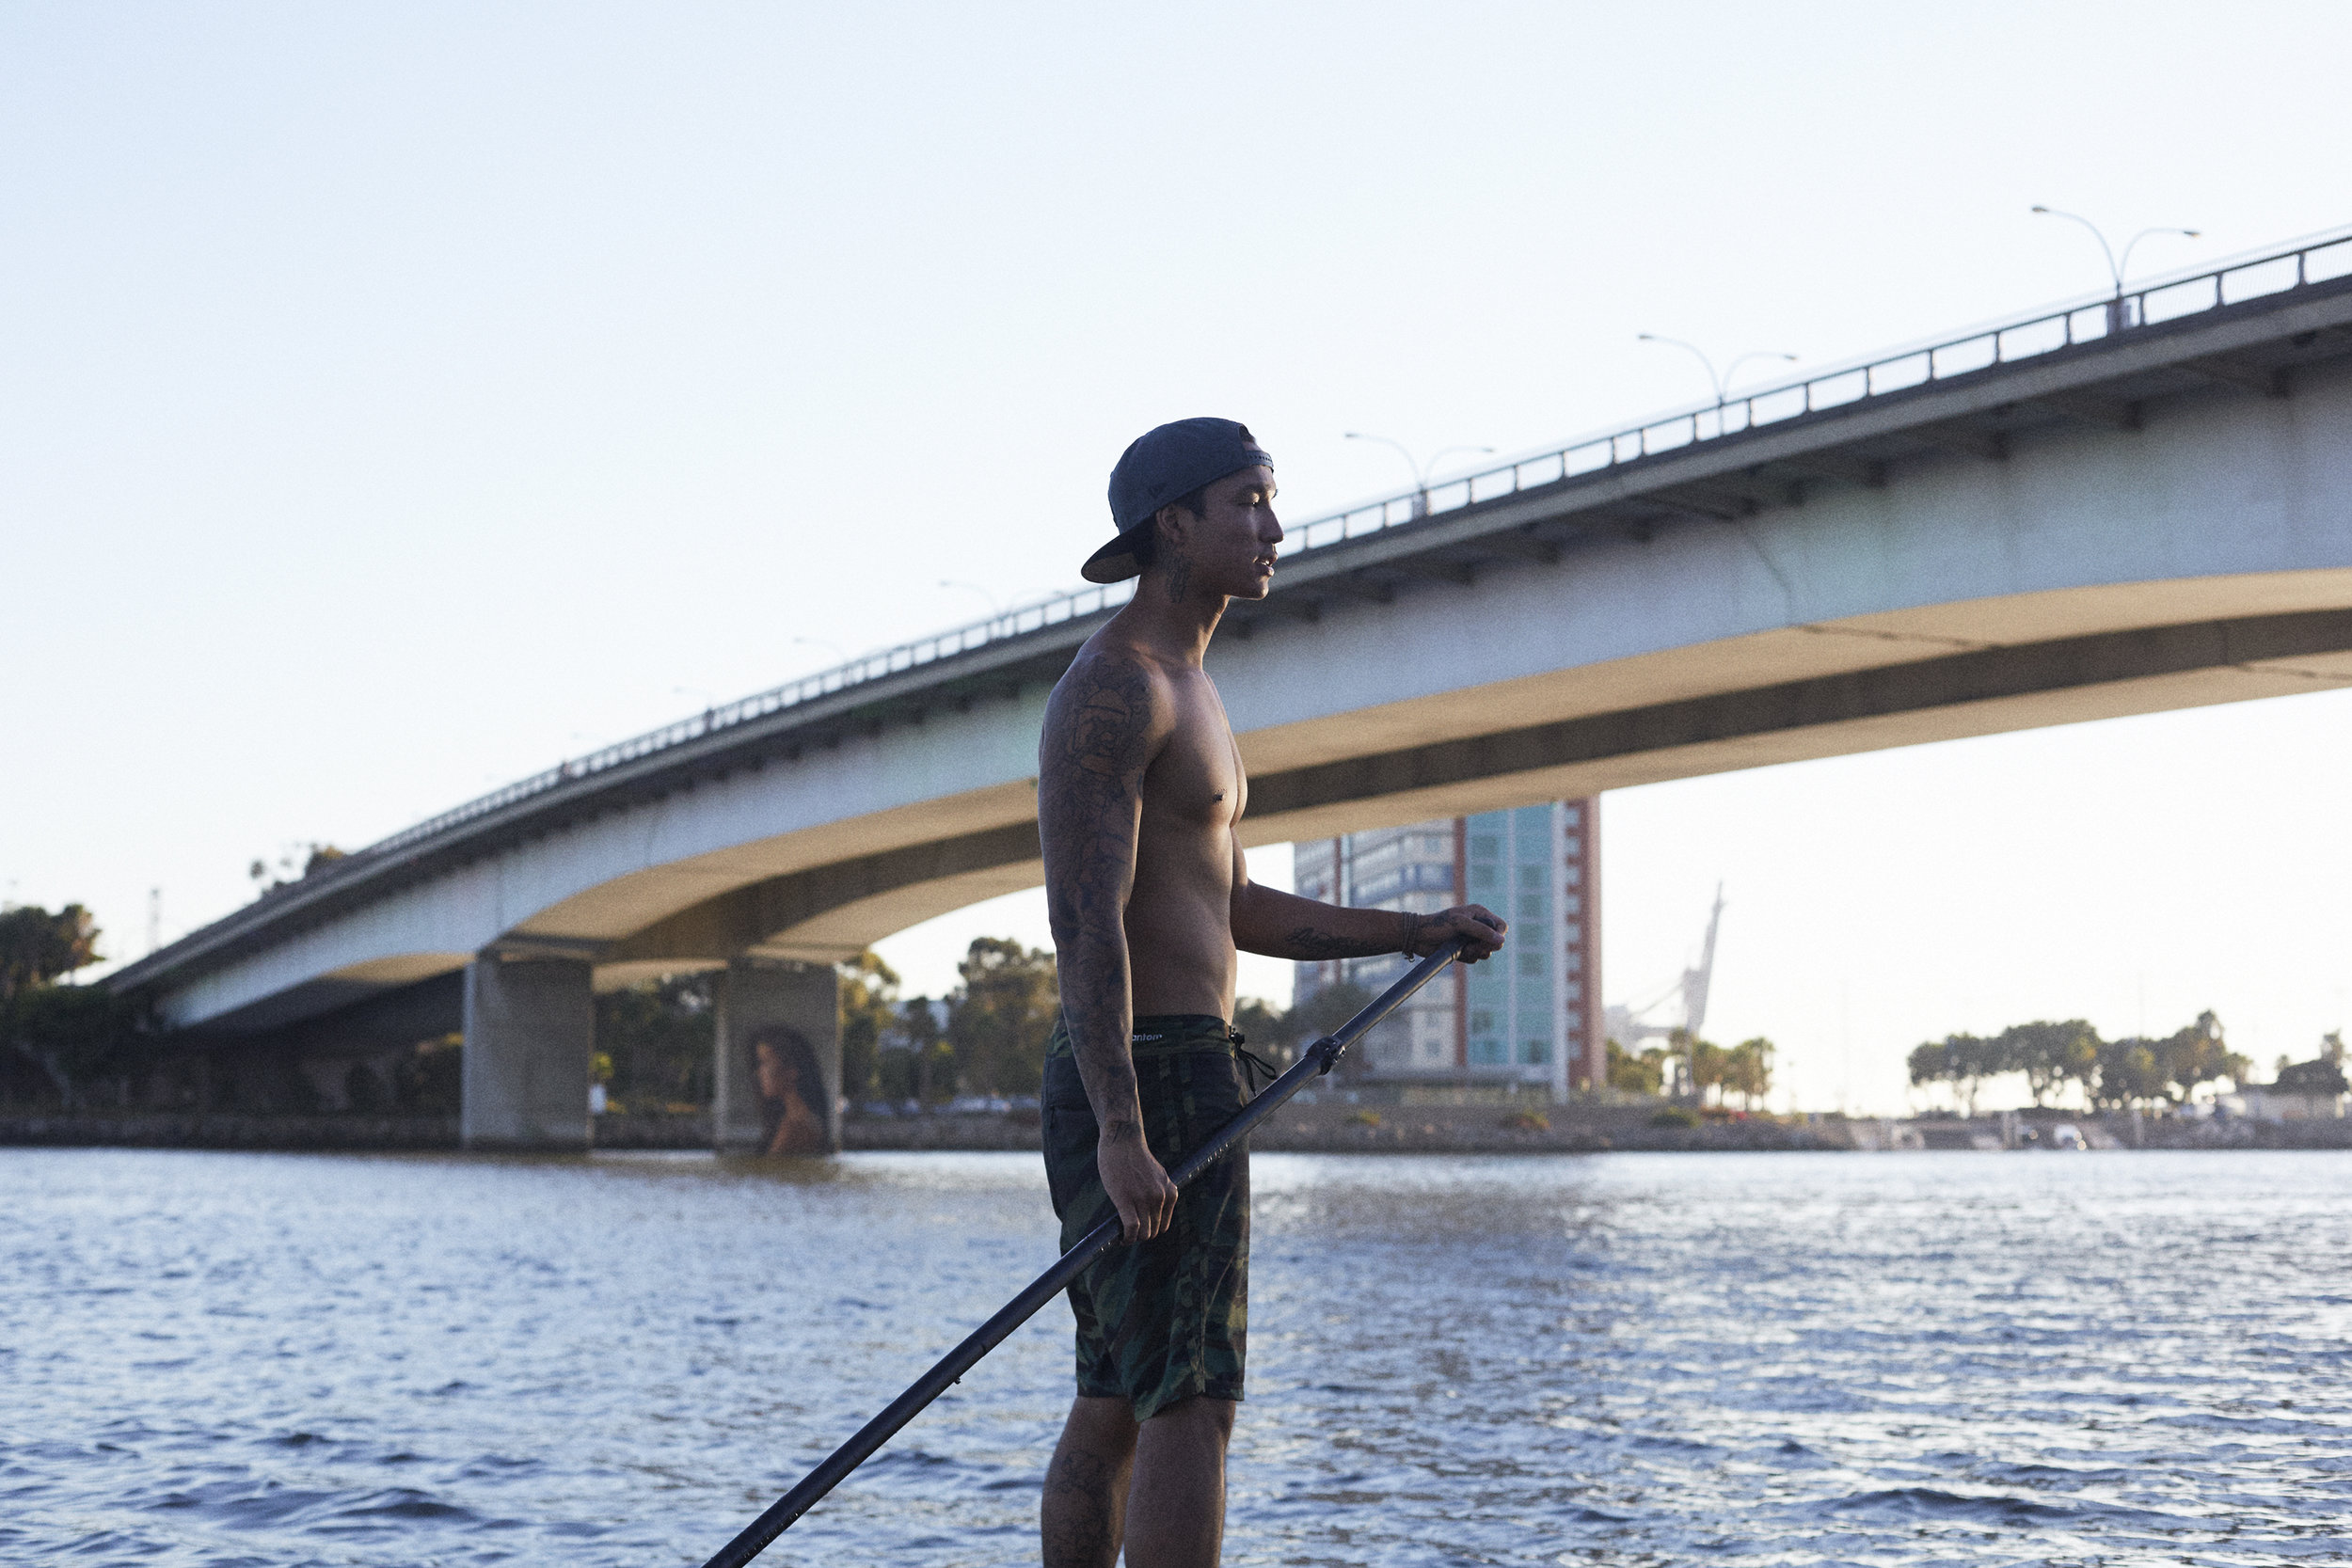 Sean Yoro on paddle board at dusk - his mural LUANA in the distance behind him.Long Beach, CA.